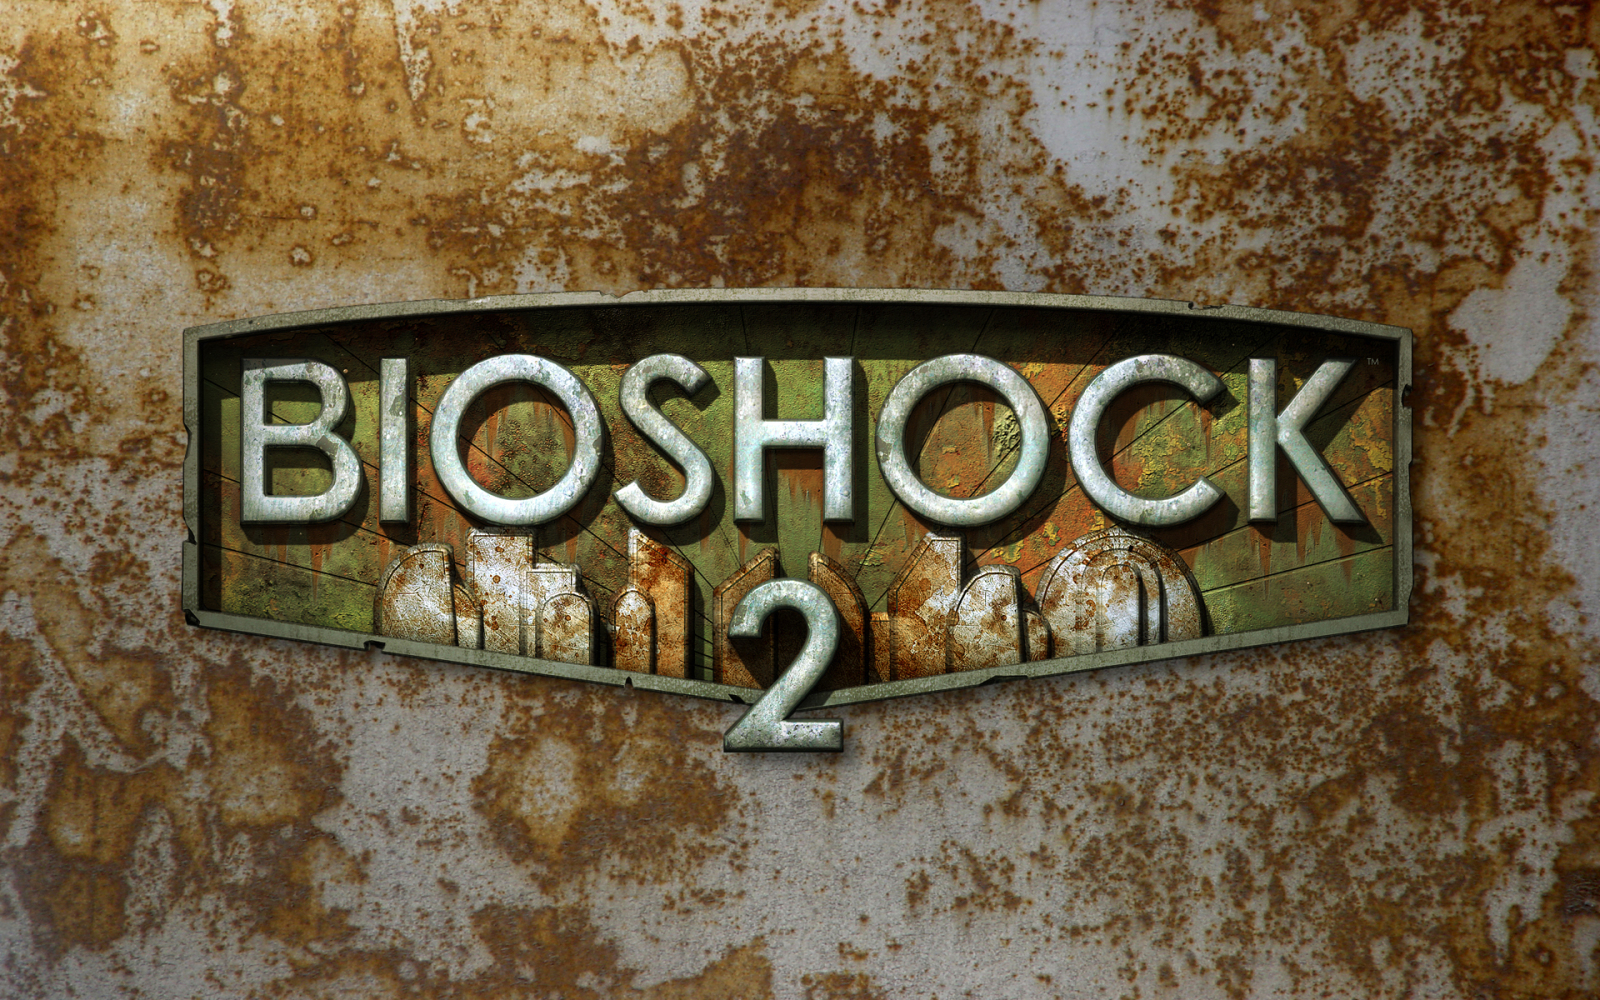 Bioshock Infinite HD & Widescreen Wallpaper 0.32348638091336